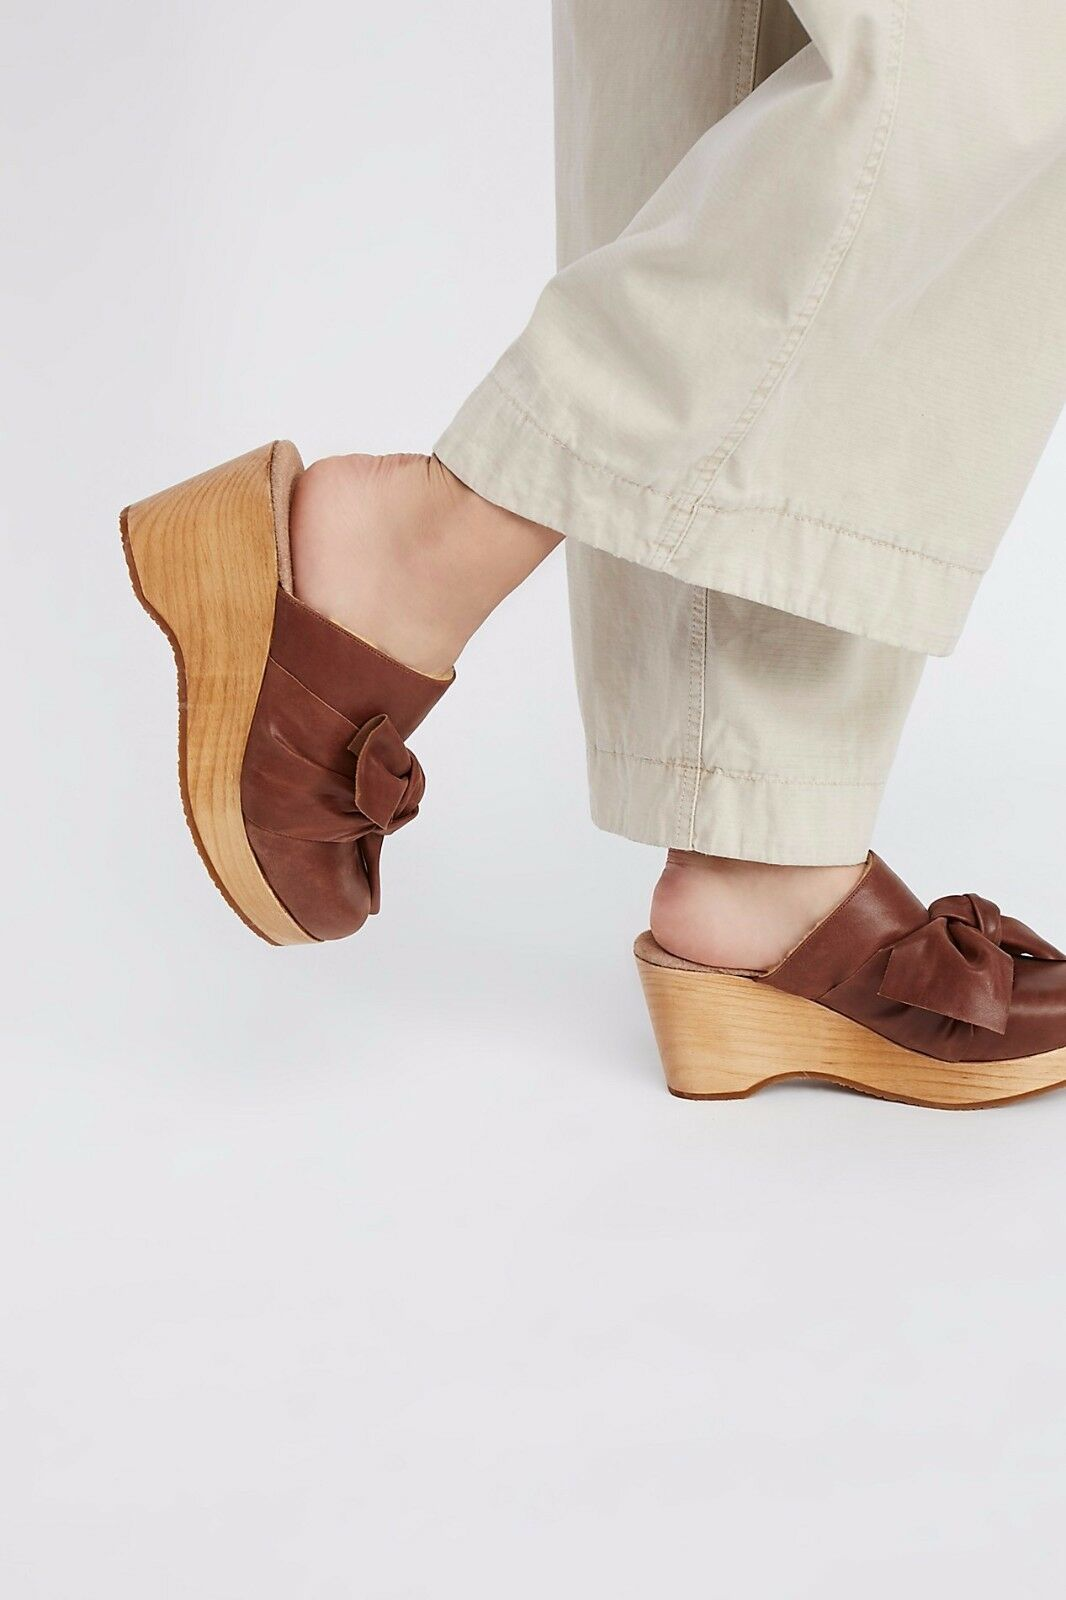 spedizione veloce a te FREE PEOPLE scarpe NIGHTINGALE CLOG COGNAC LEATHER 39 39 39 FUR LINED WEDGE MULES NEW  l'ultimo